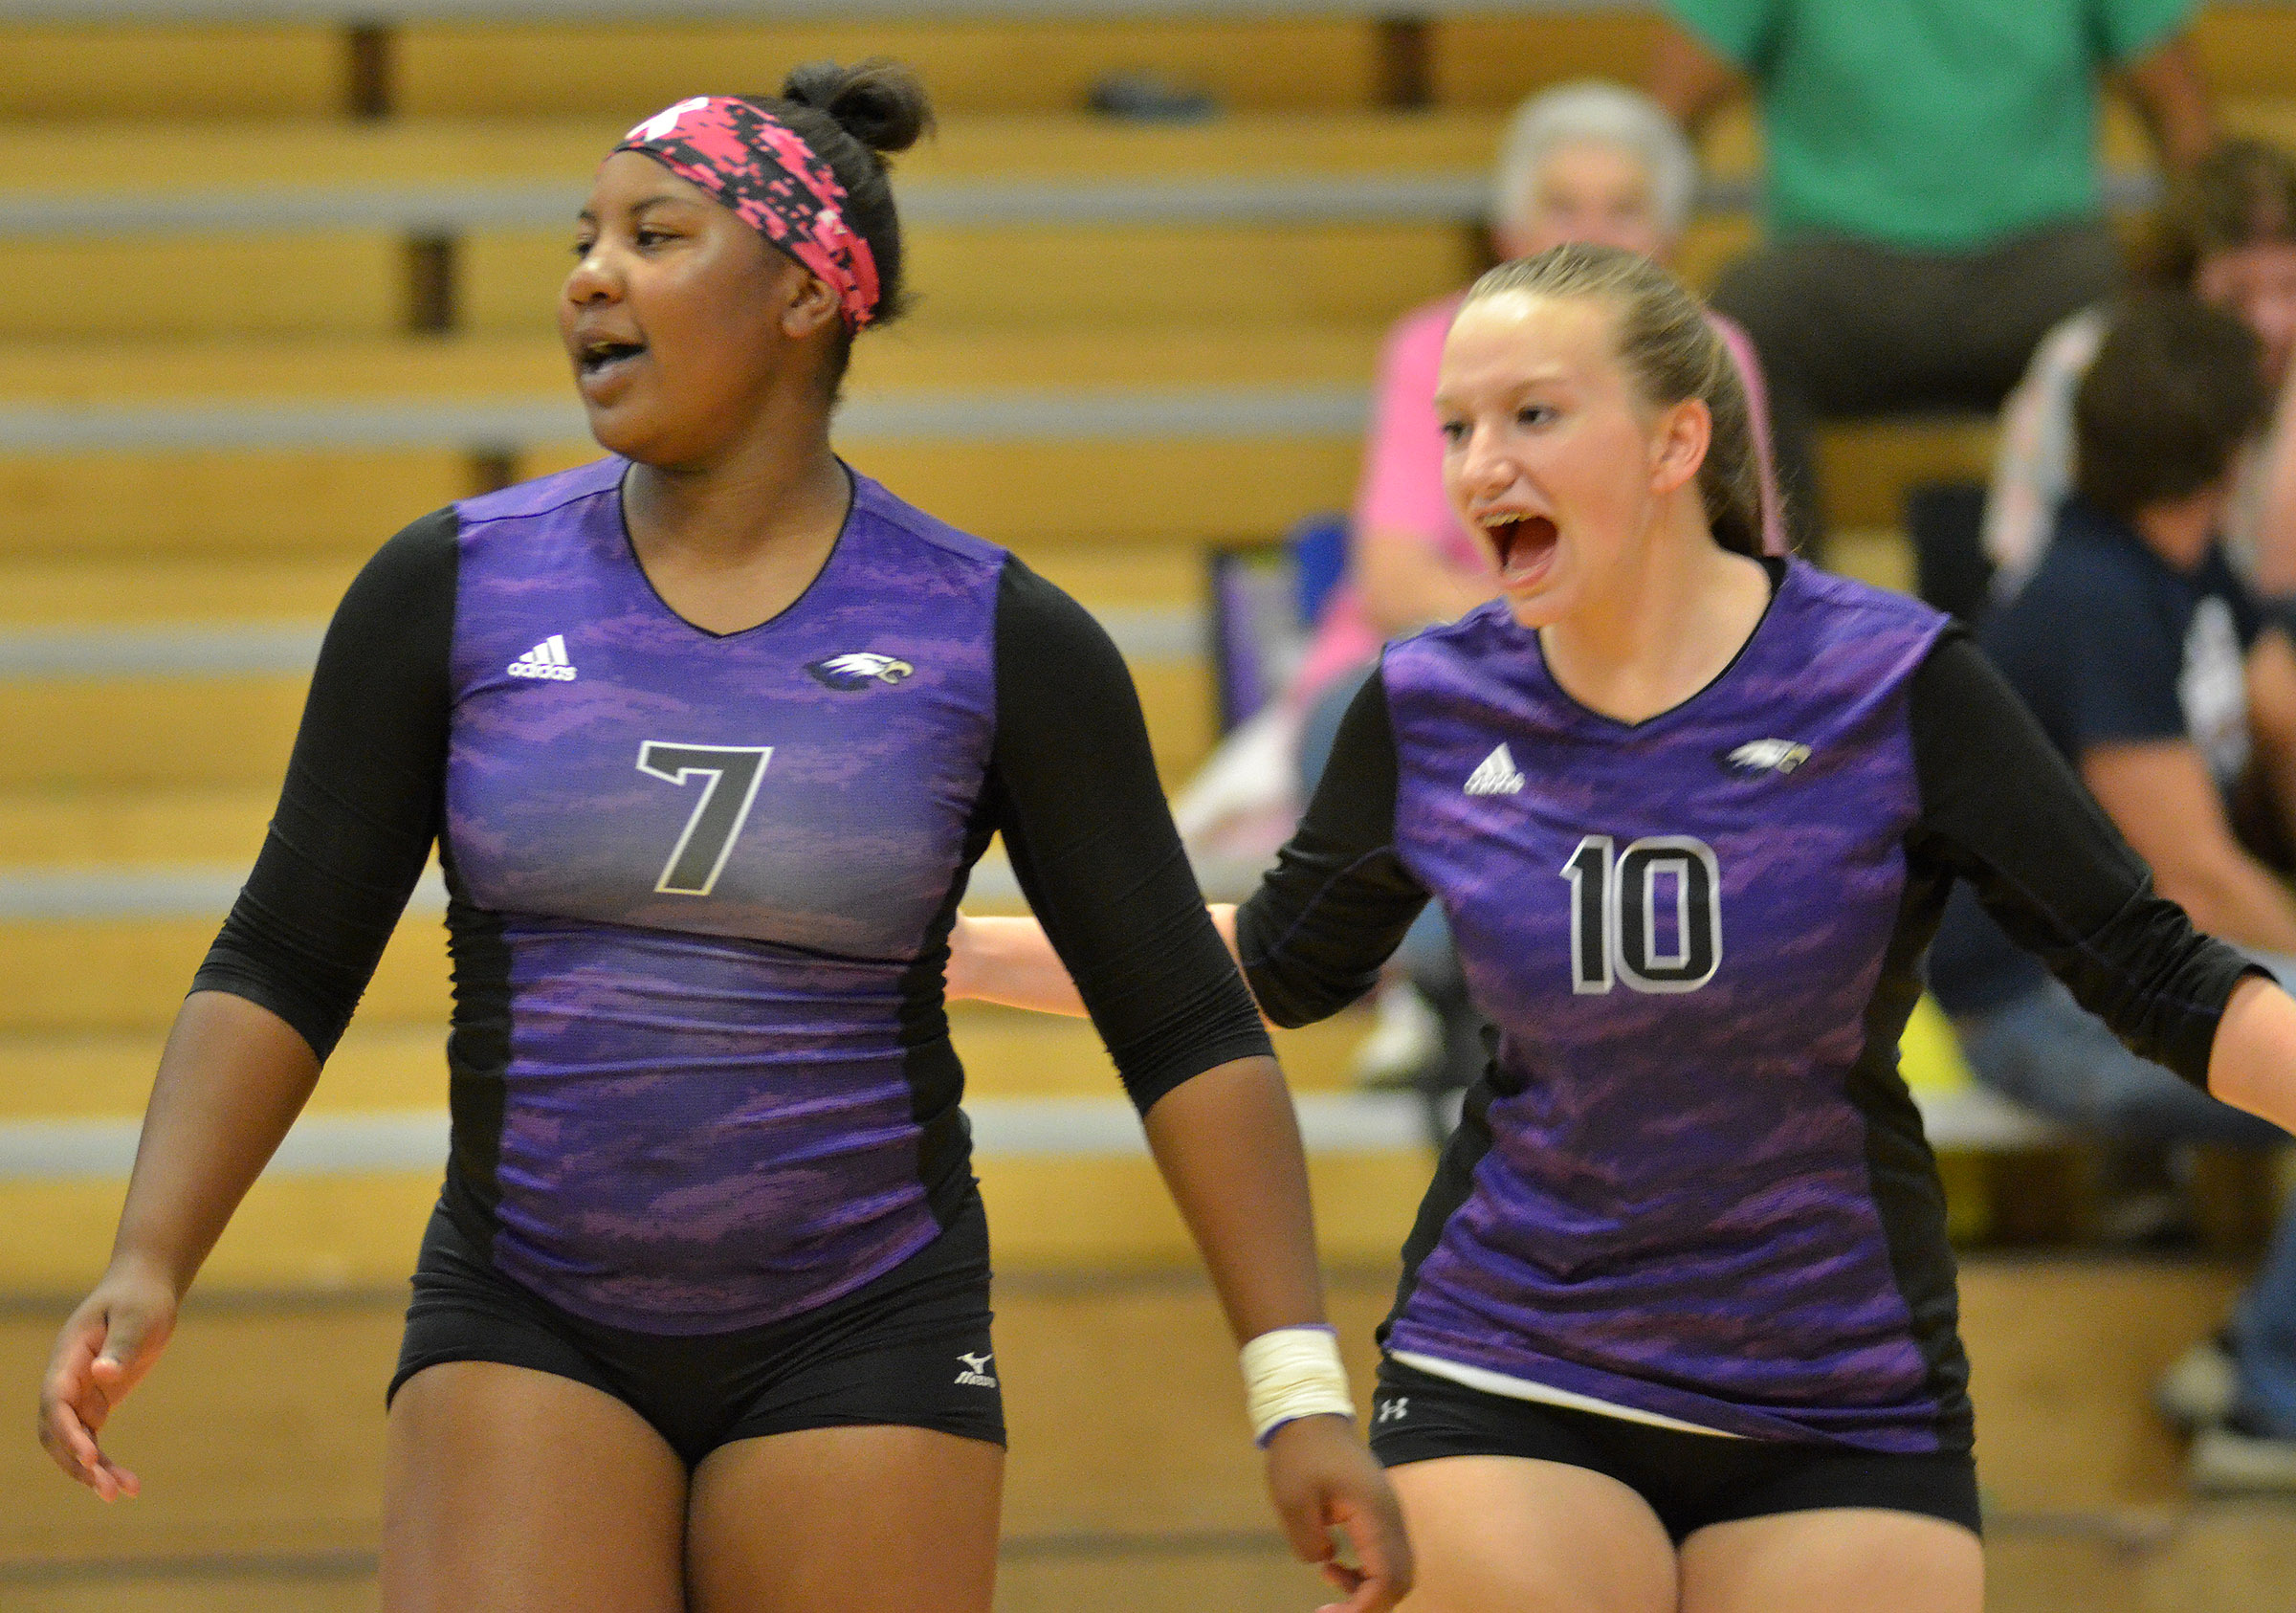 CHS seniors Kiyah Barnett, at left, and Madison Dial cheer after a point.